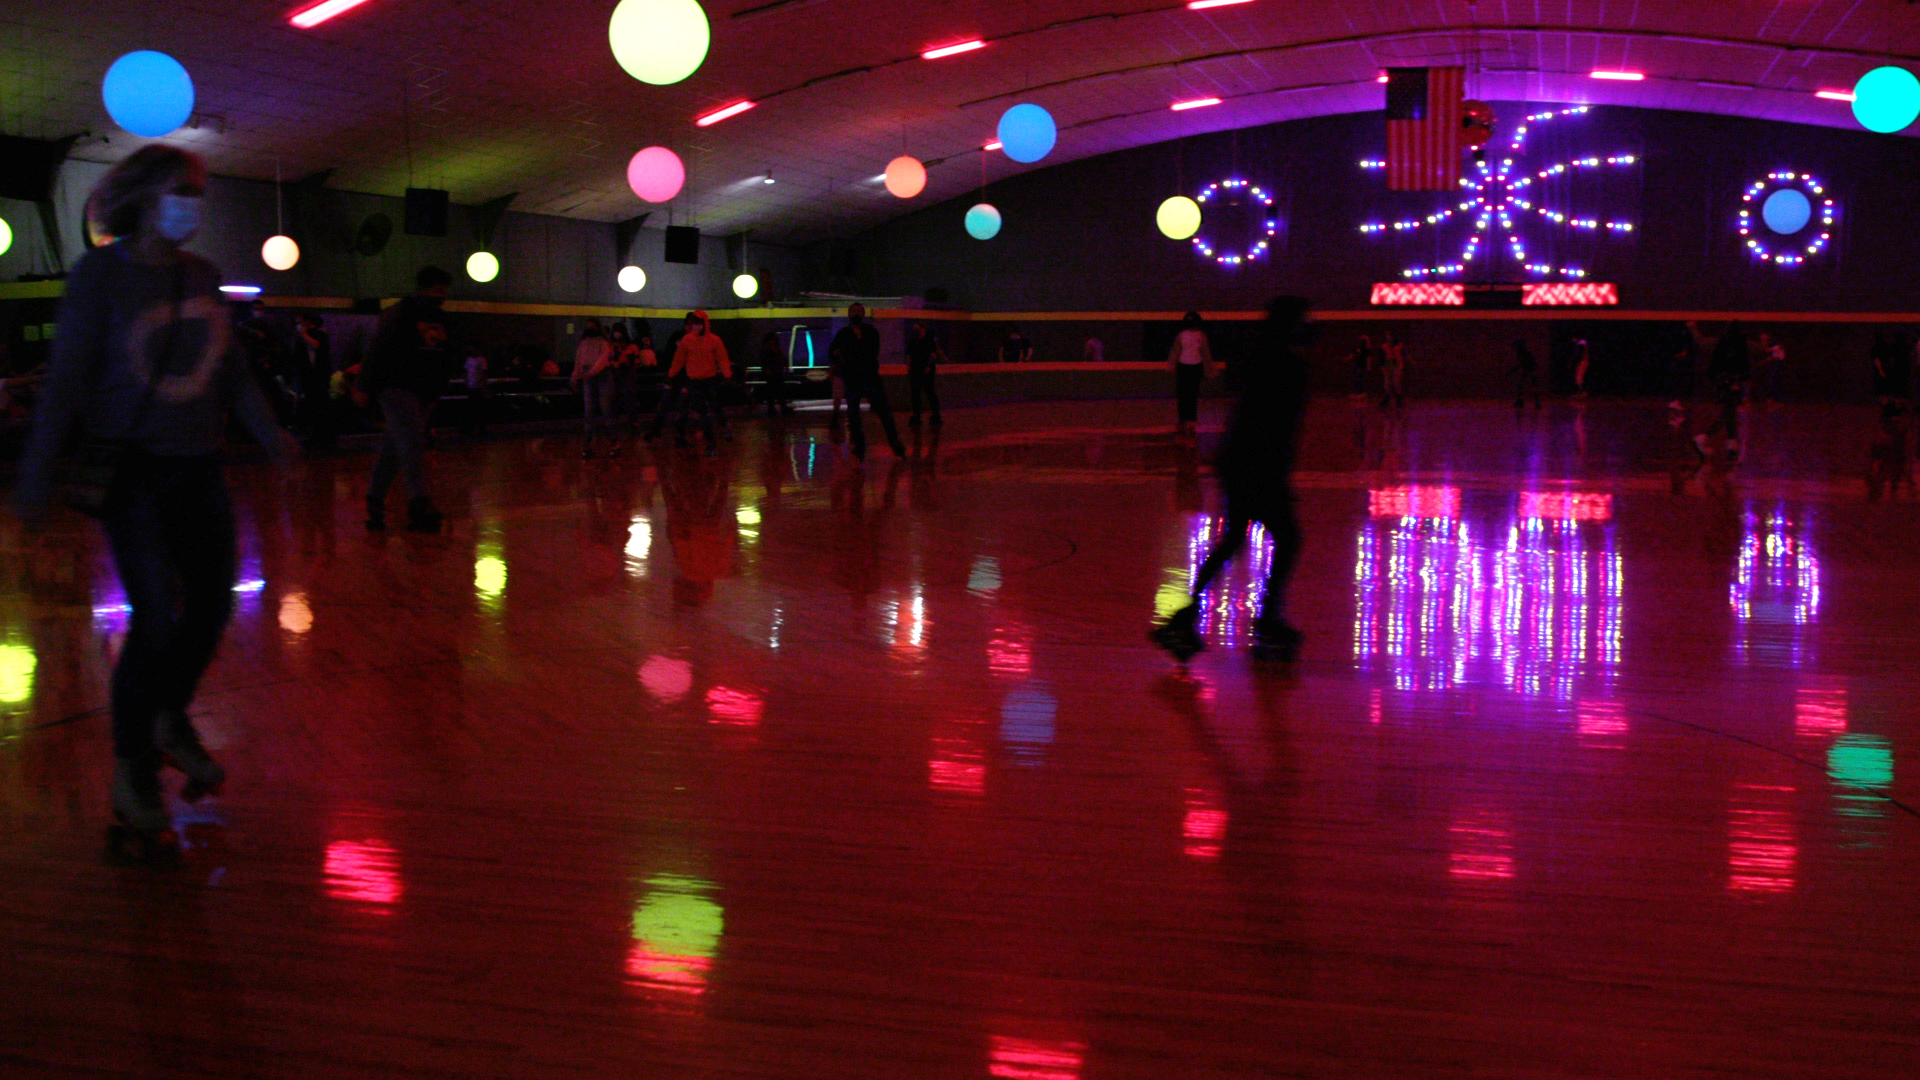 St. Louis Park's longtime Roller Garden skating rink will close on Saturday, May 8th, after 52 years in business.